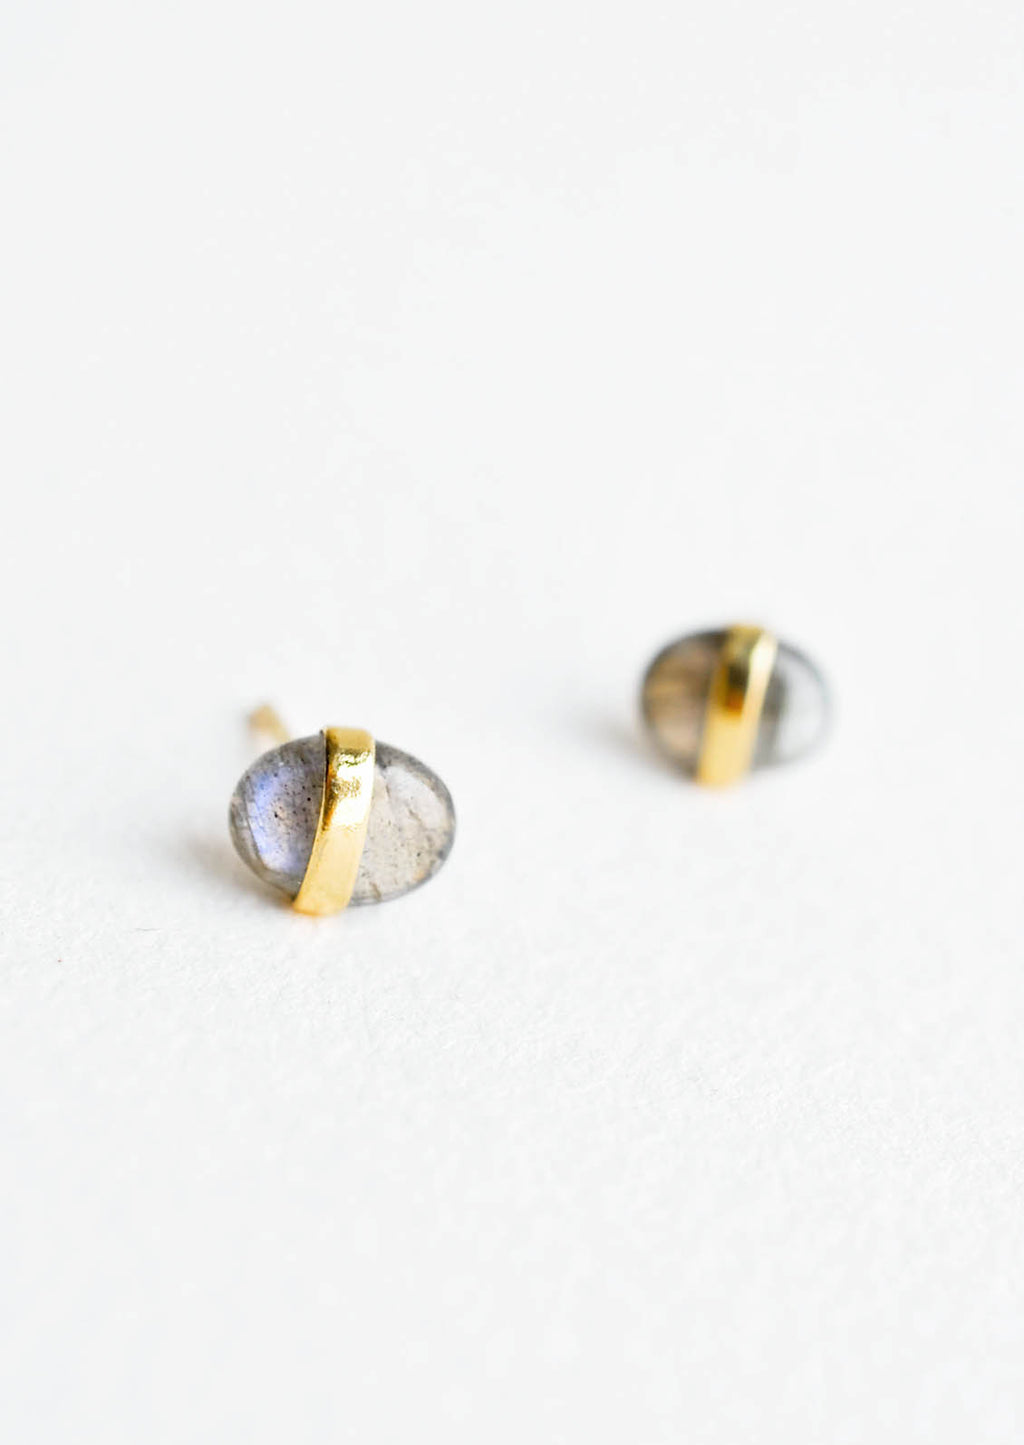 1: Oval-shaped, pebble-like stud earrings in iridescent labradorite with golden band wrapped around middle.